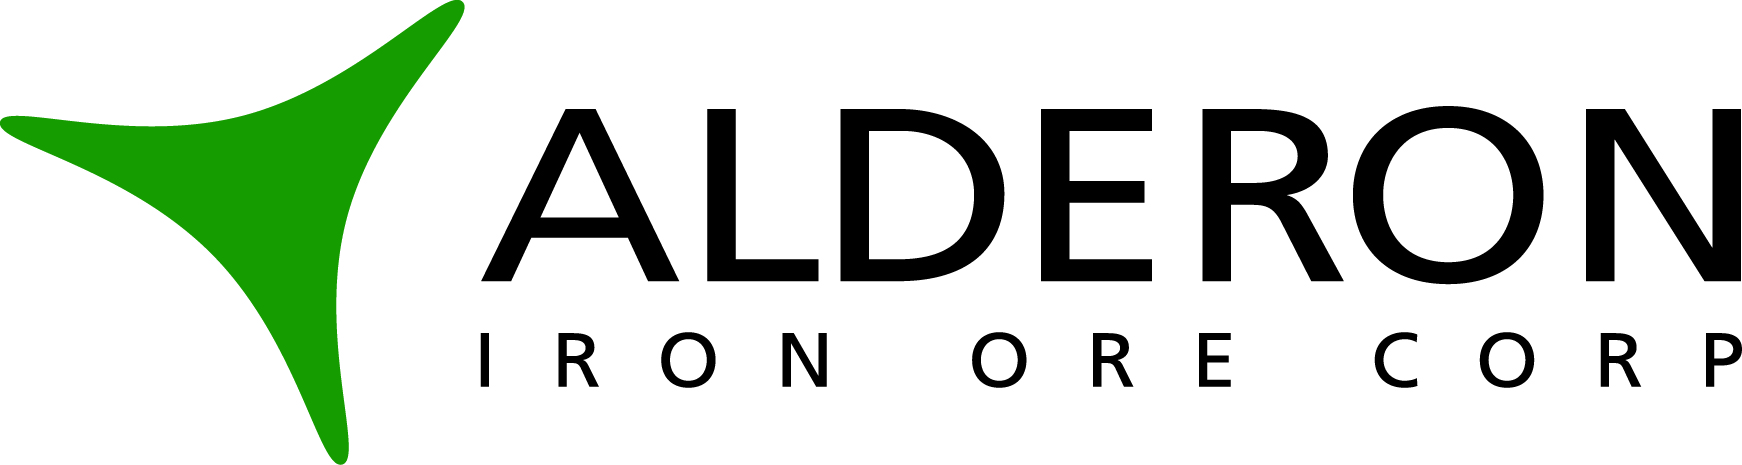 Alderon Provides Corporate Update